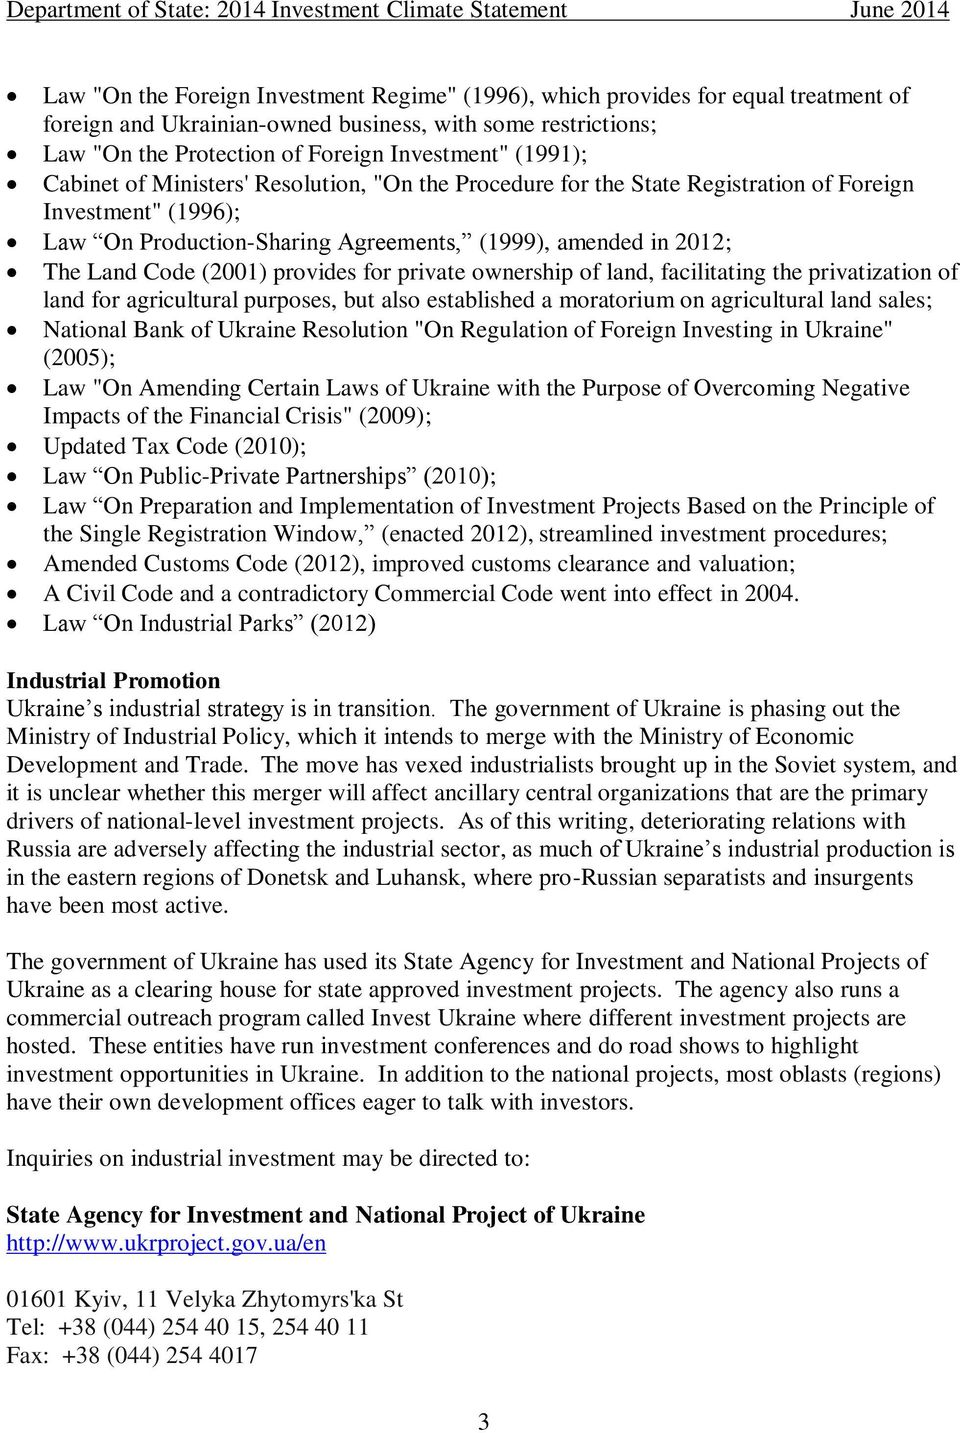 (2001) provides for private ownership of land, facilitating the privatization of land for agricultural purposes, but also established a moratorium on agricultural land sales; National Bank of Ukraine